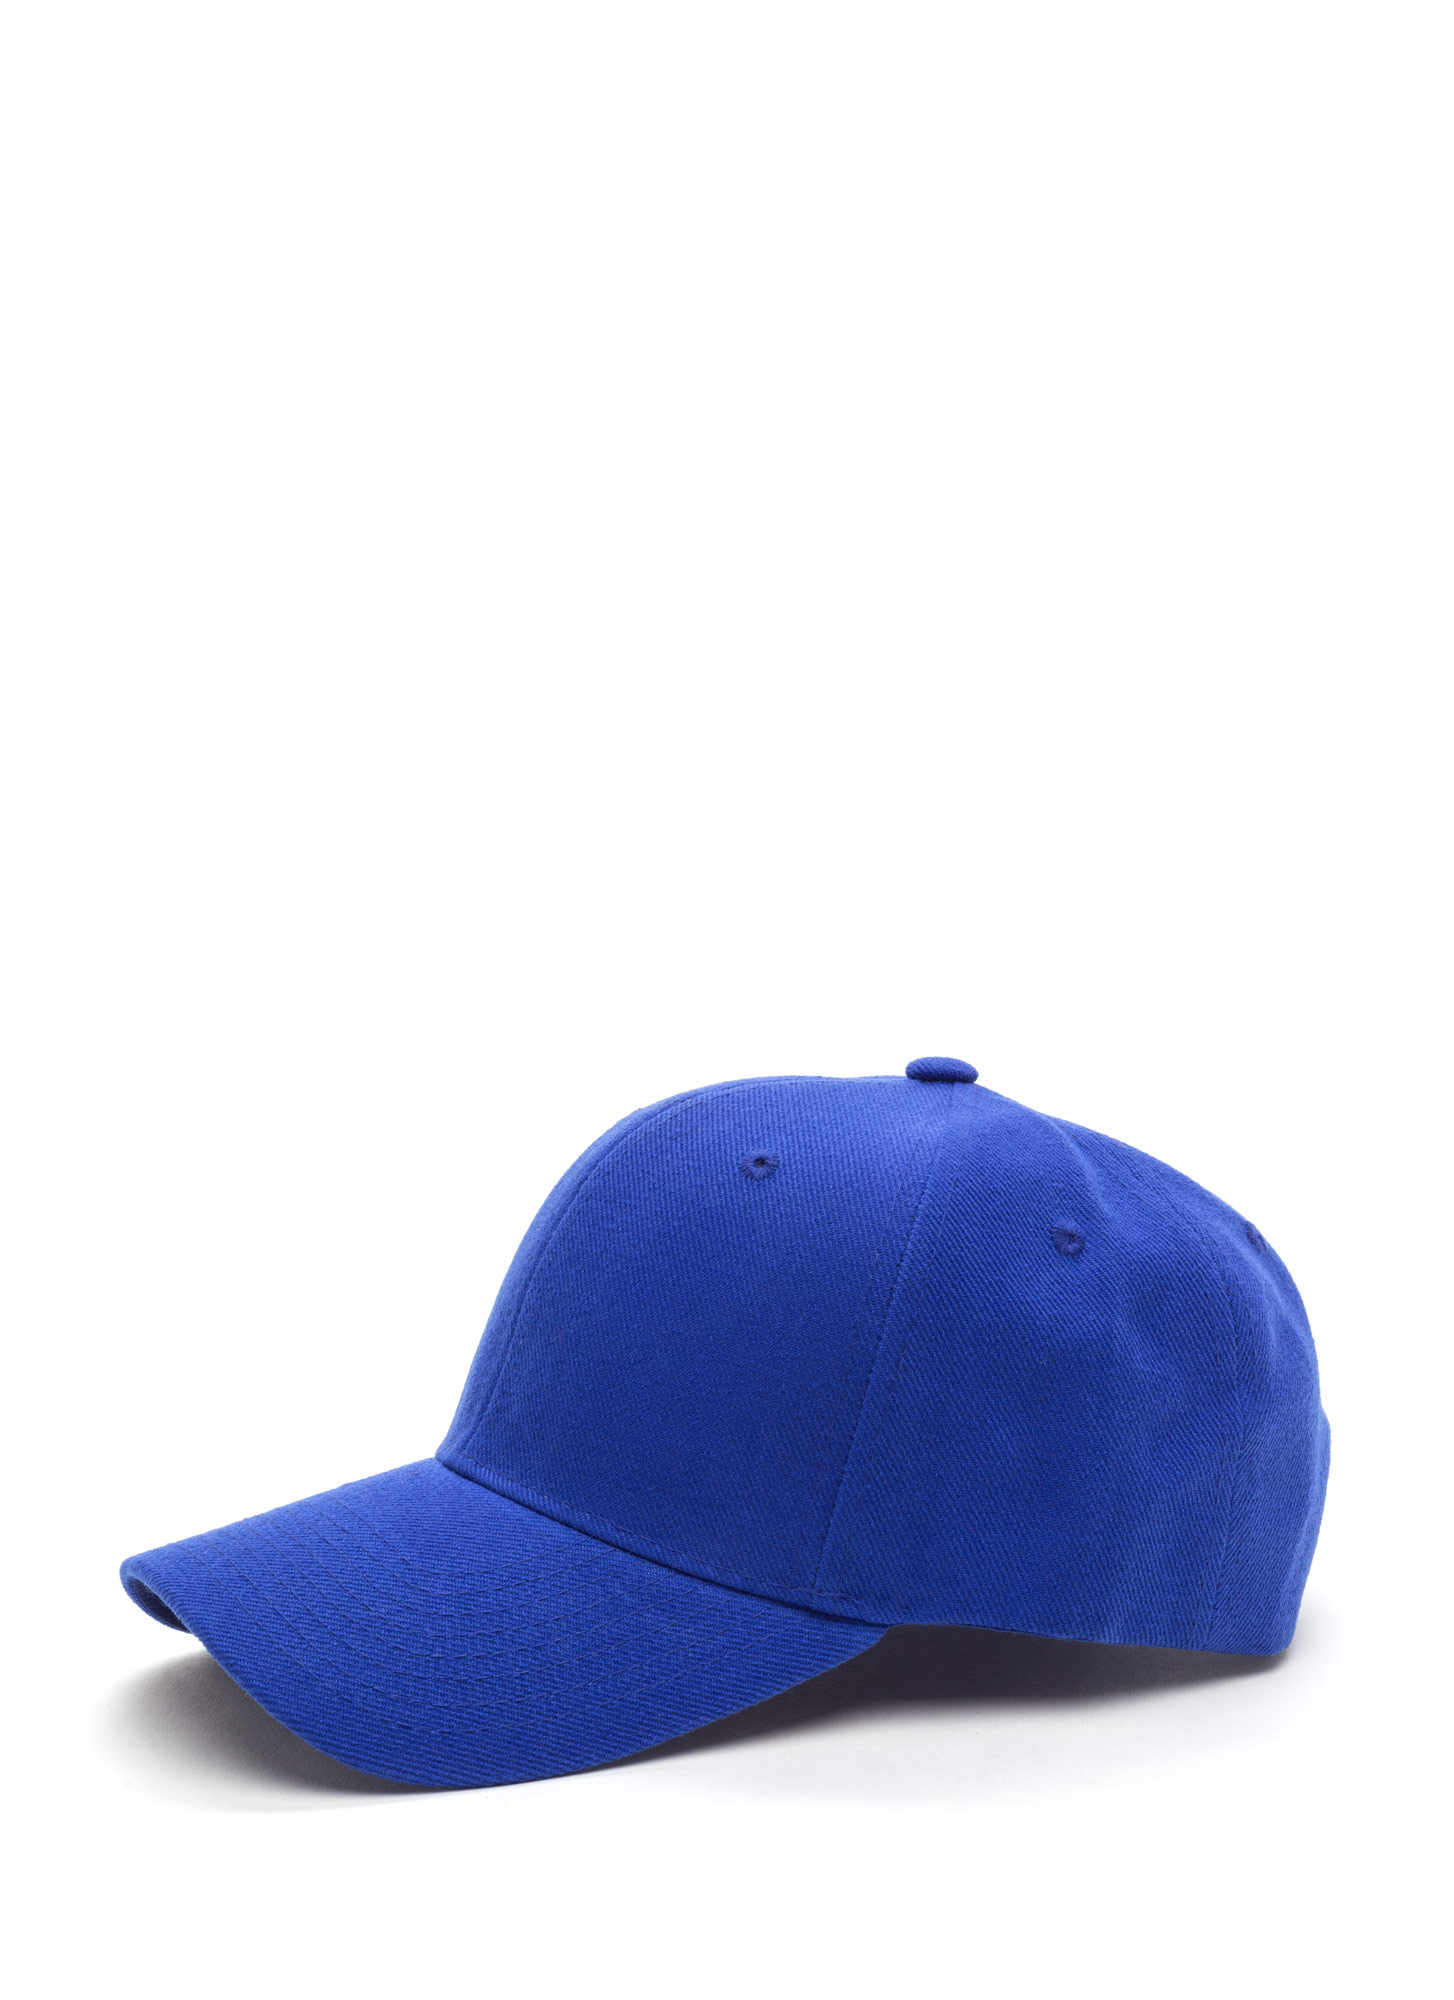 Top It Off Baseball Cap ROYAL